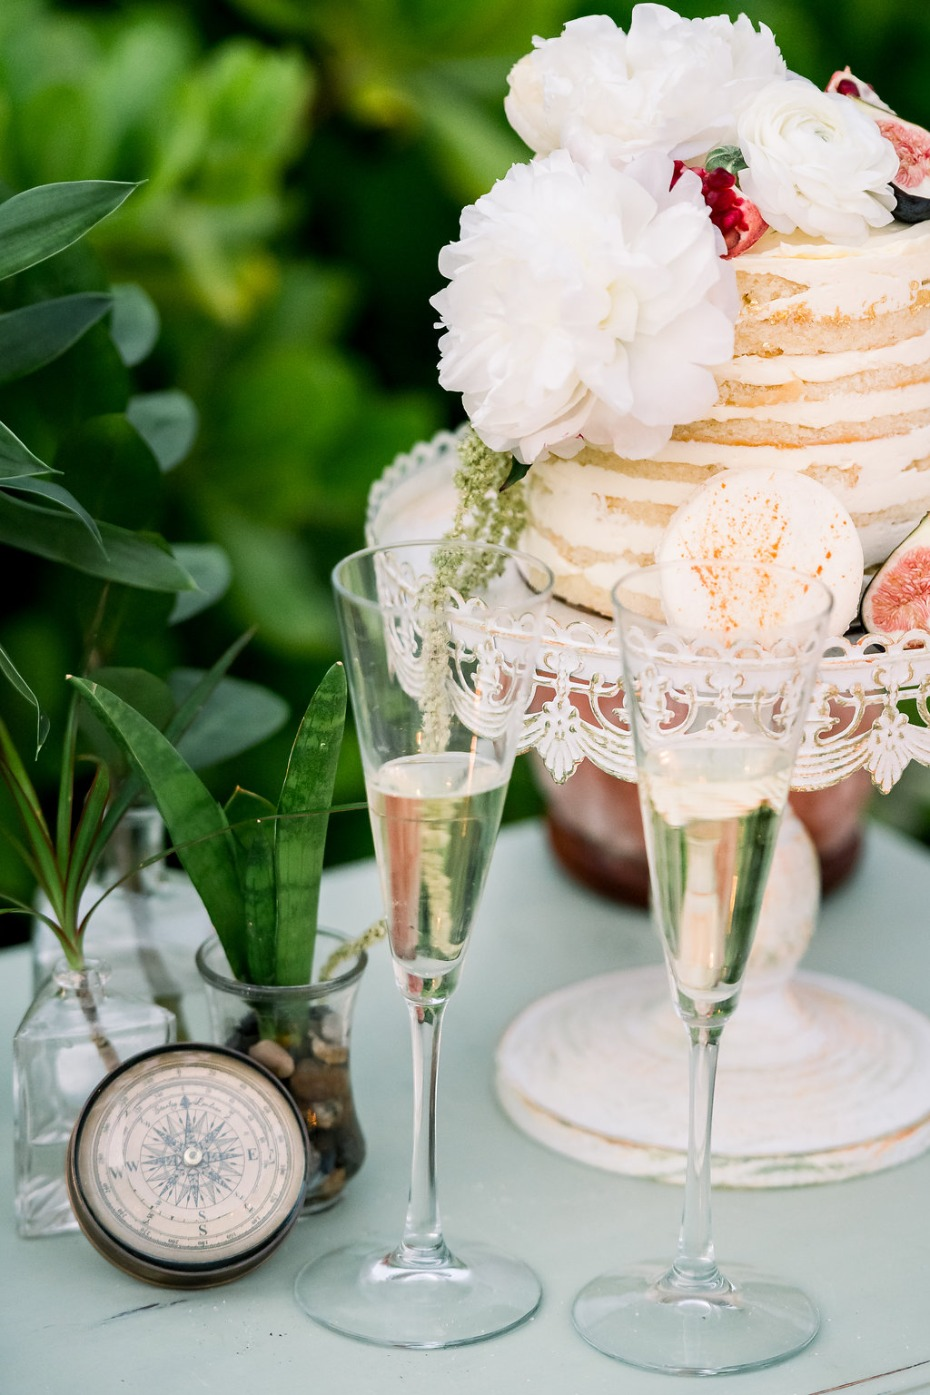 Cayman Island Beach Wedding Cake and Champagne